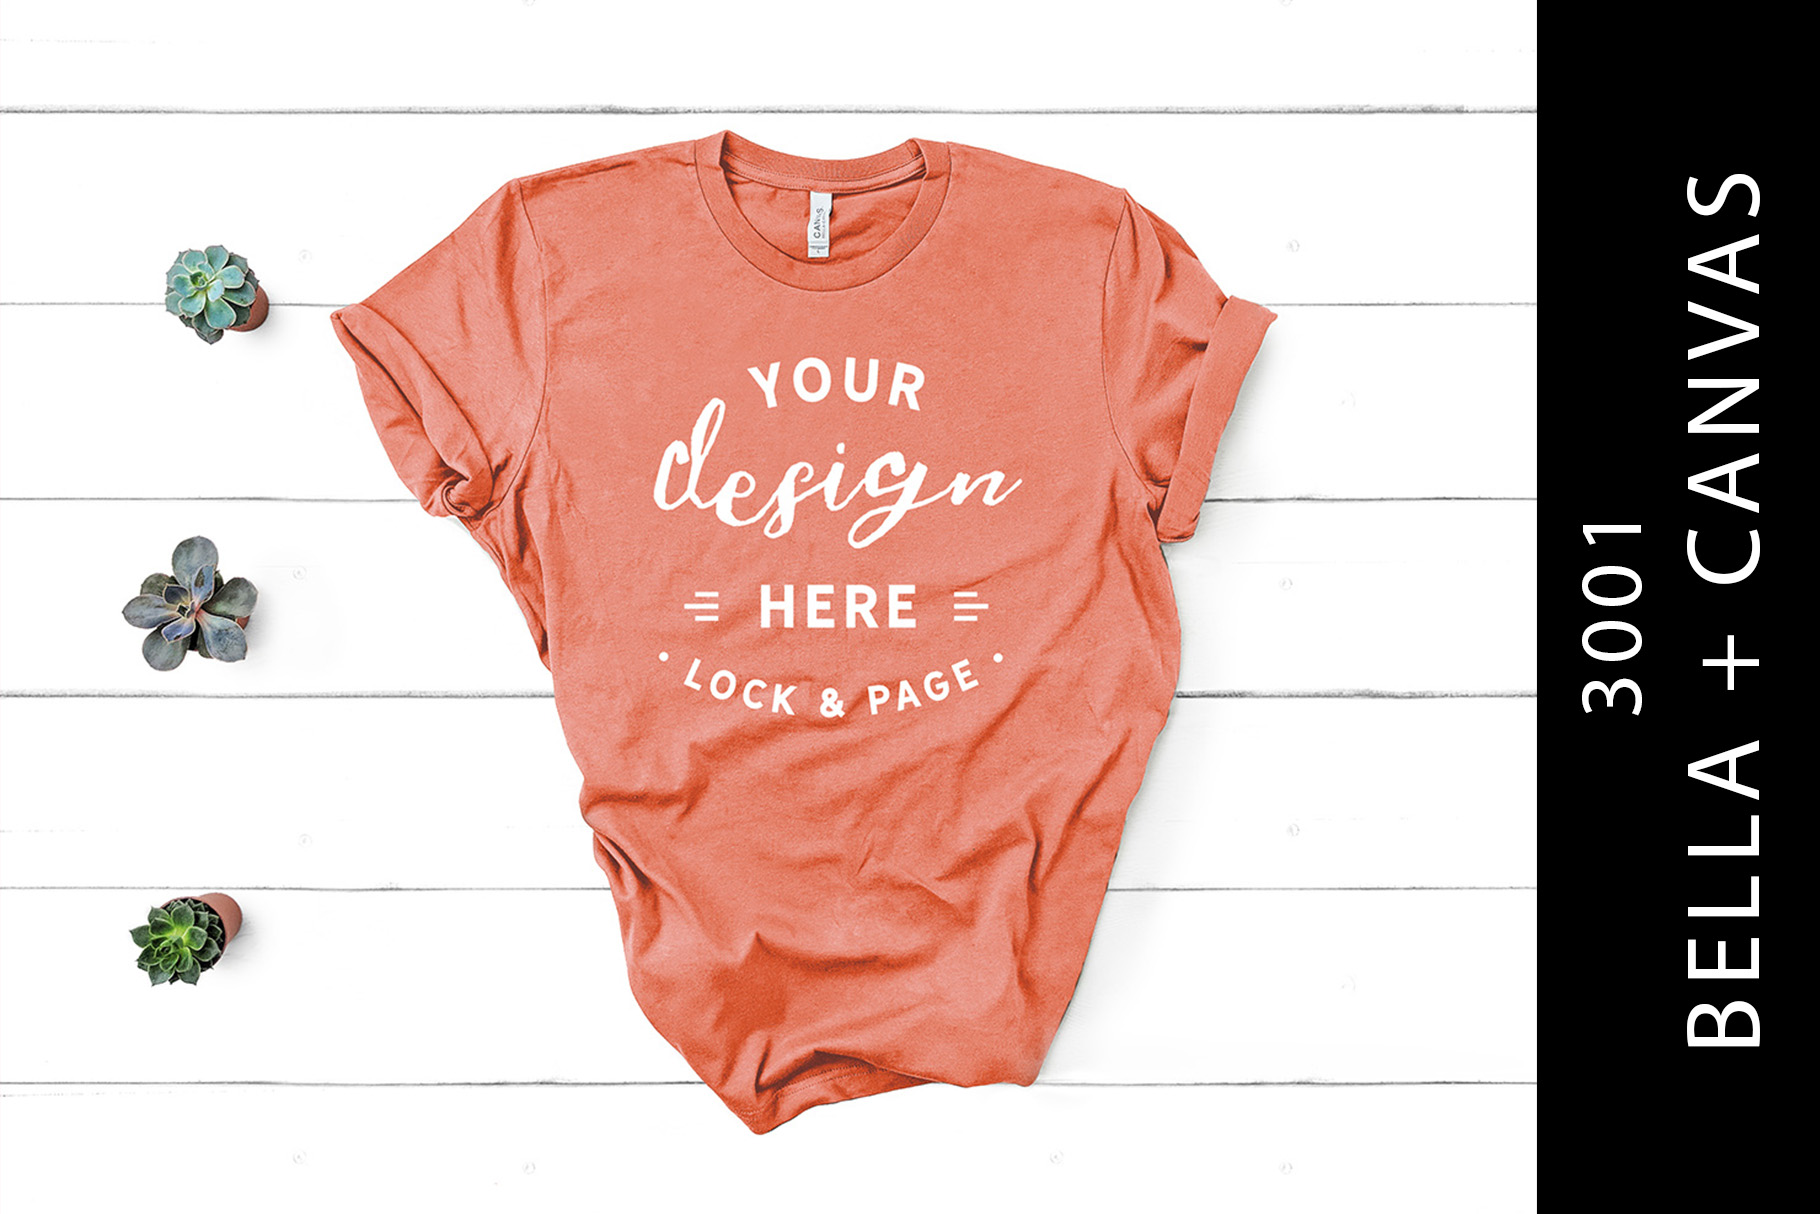 Download Free Sunset Bella Canvas 3001 T Shirt Mockup Graphic By Lockandpage for Cricut Explore, Silhouette and other cutting machines.